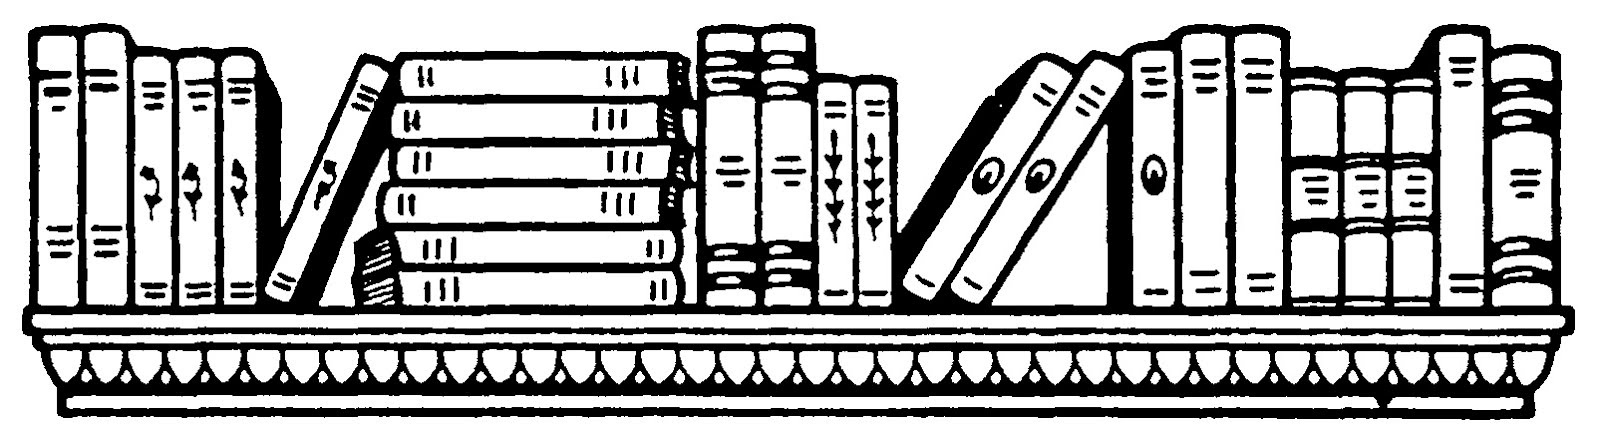 Row Of Books Clipart Black And White.